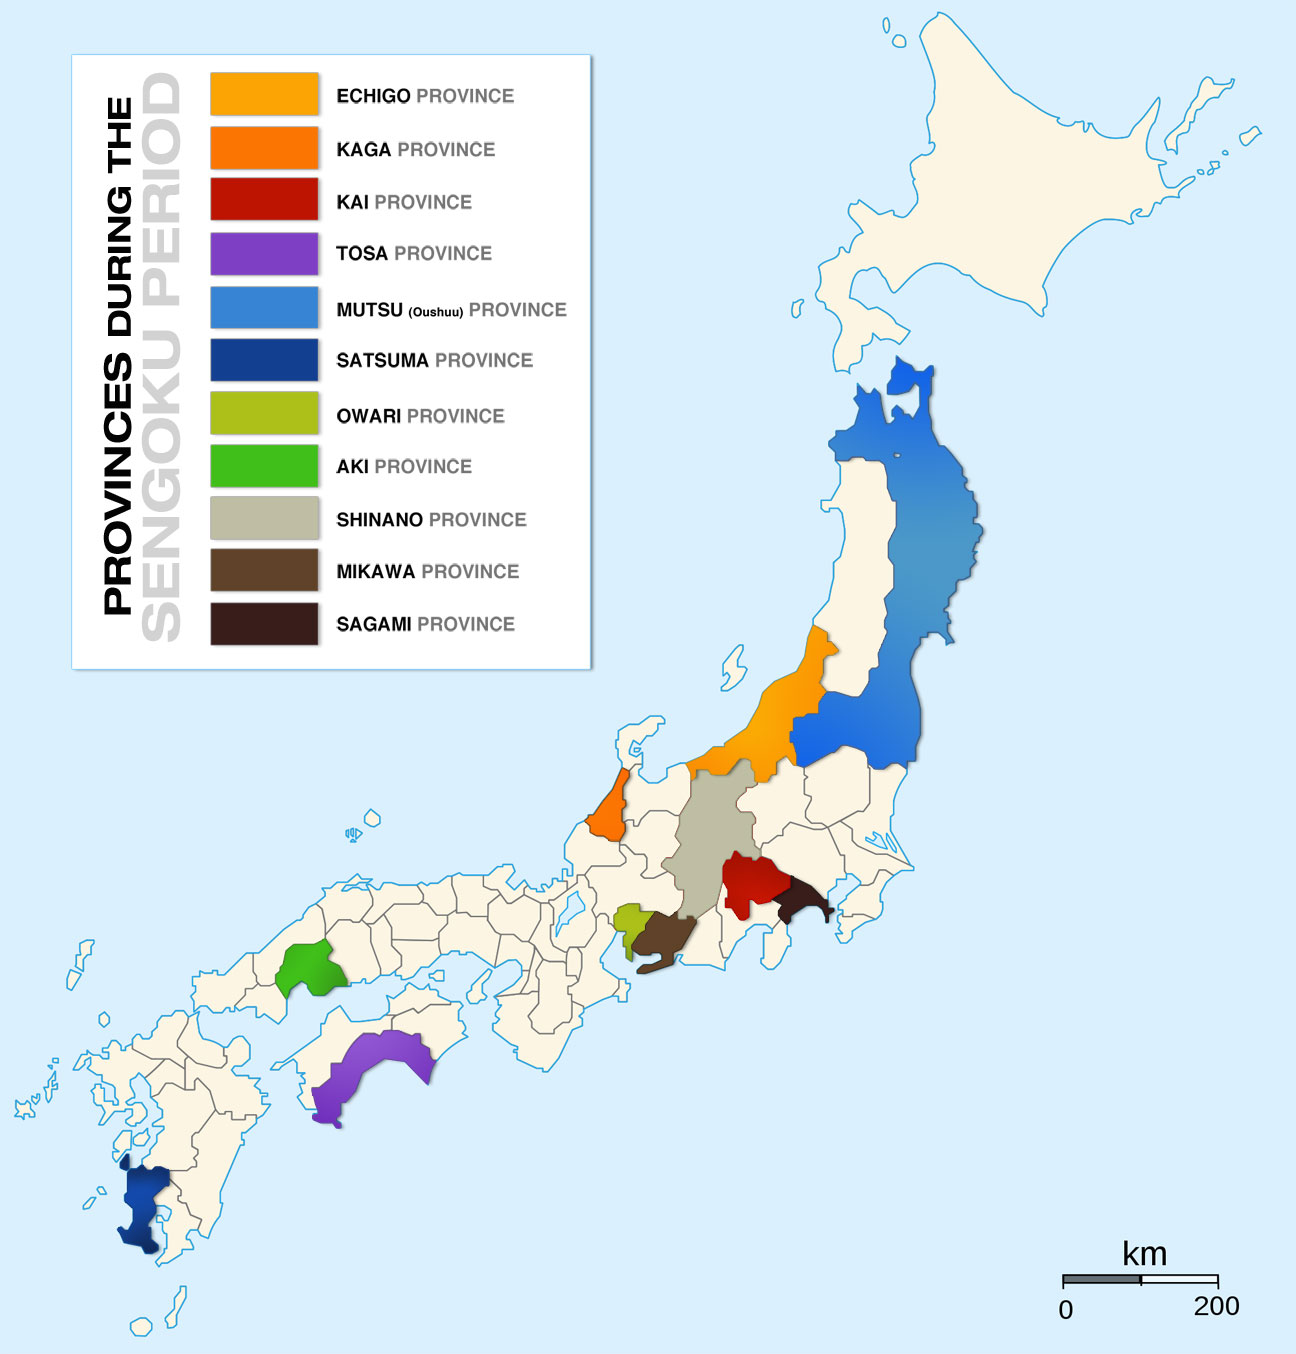 sengoku period japan I'm looking for some kind of authoritative list of the main clans operating during the sengoku period, if possible with each clan's kamon but most importantly which geographical areas they controll.